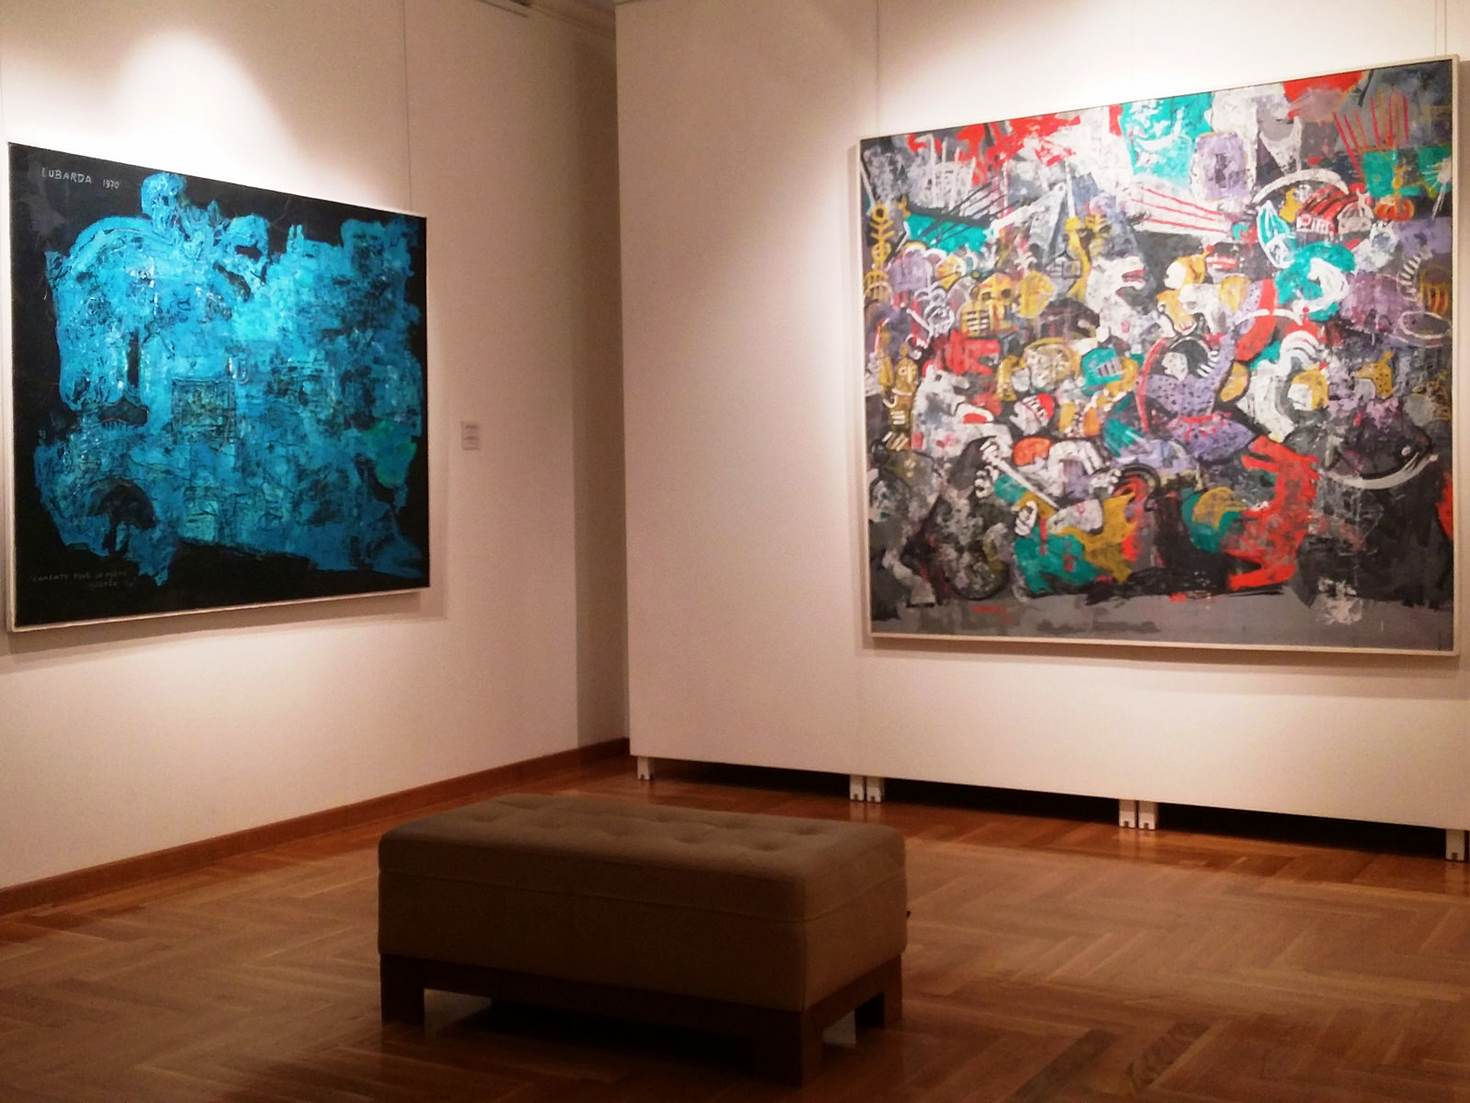 Expressionist paintings at the Legacy of Petar Lubarda © Mladen Savkovic / Lonely Planet